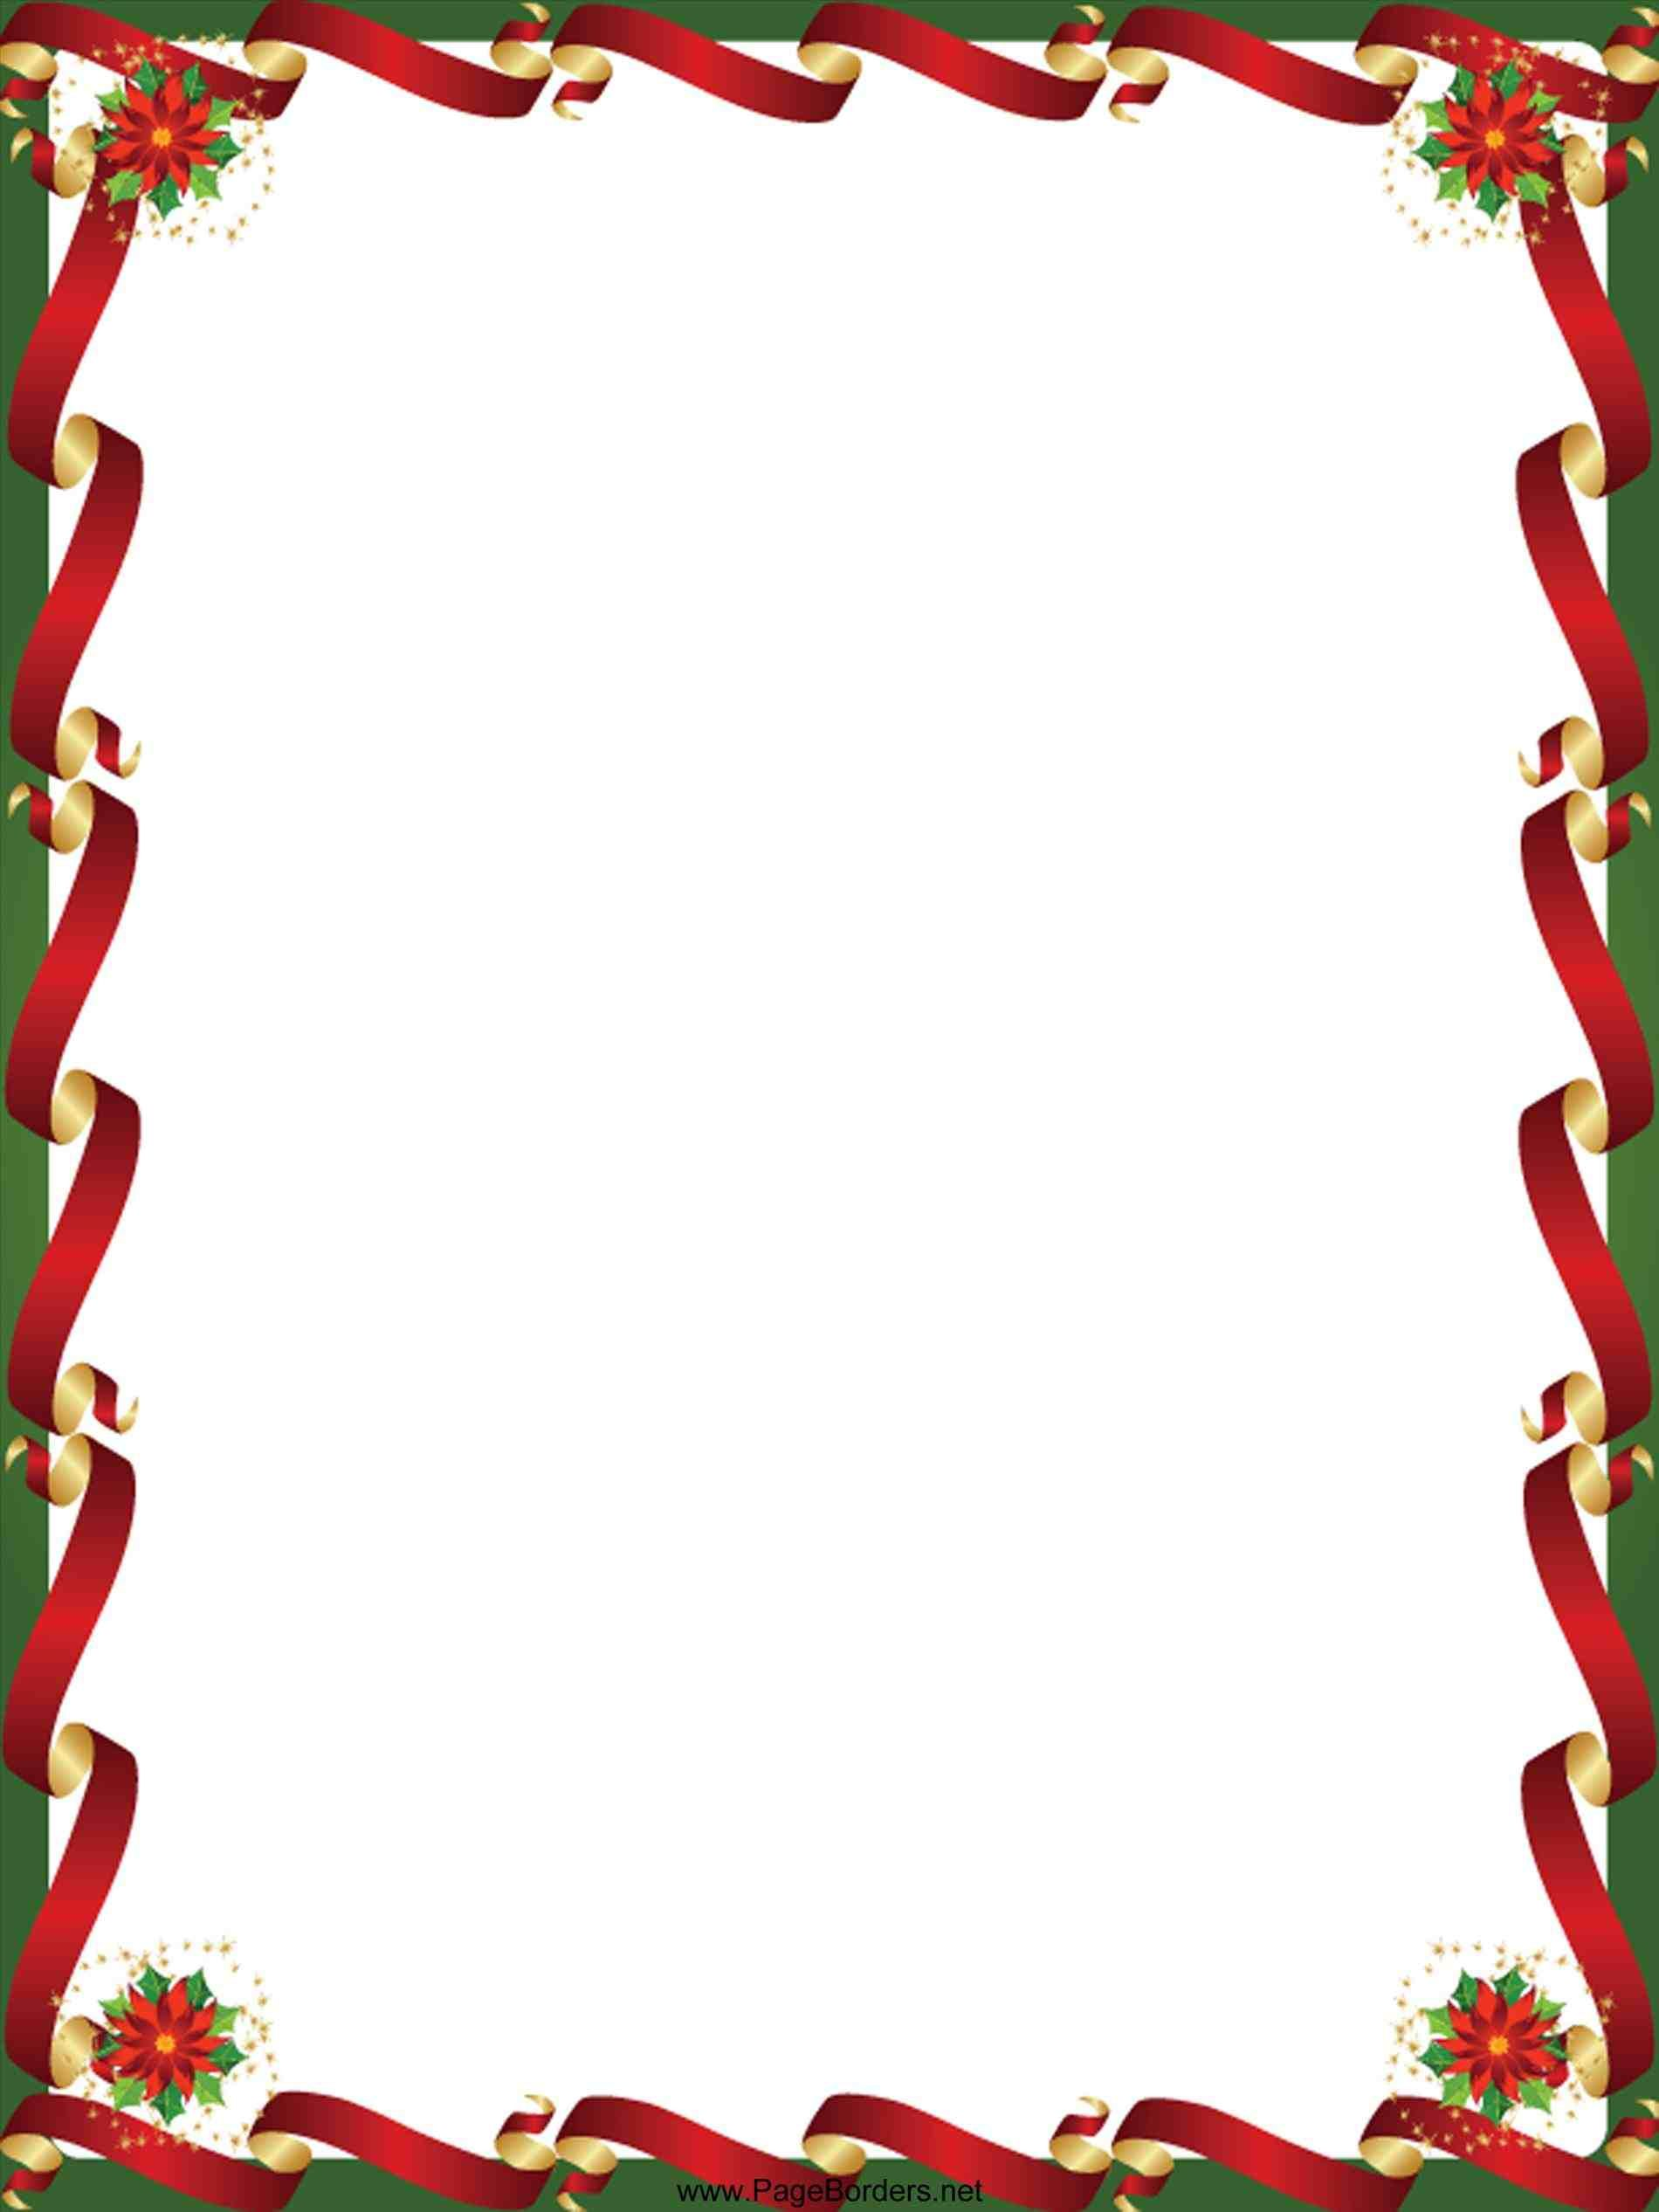 This Free Christmas Border Templates Download Happy New